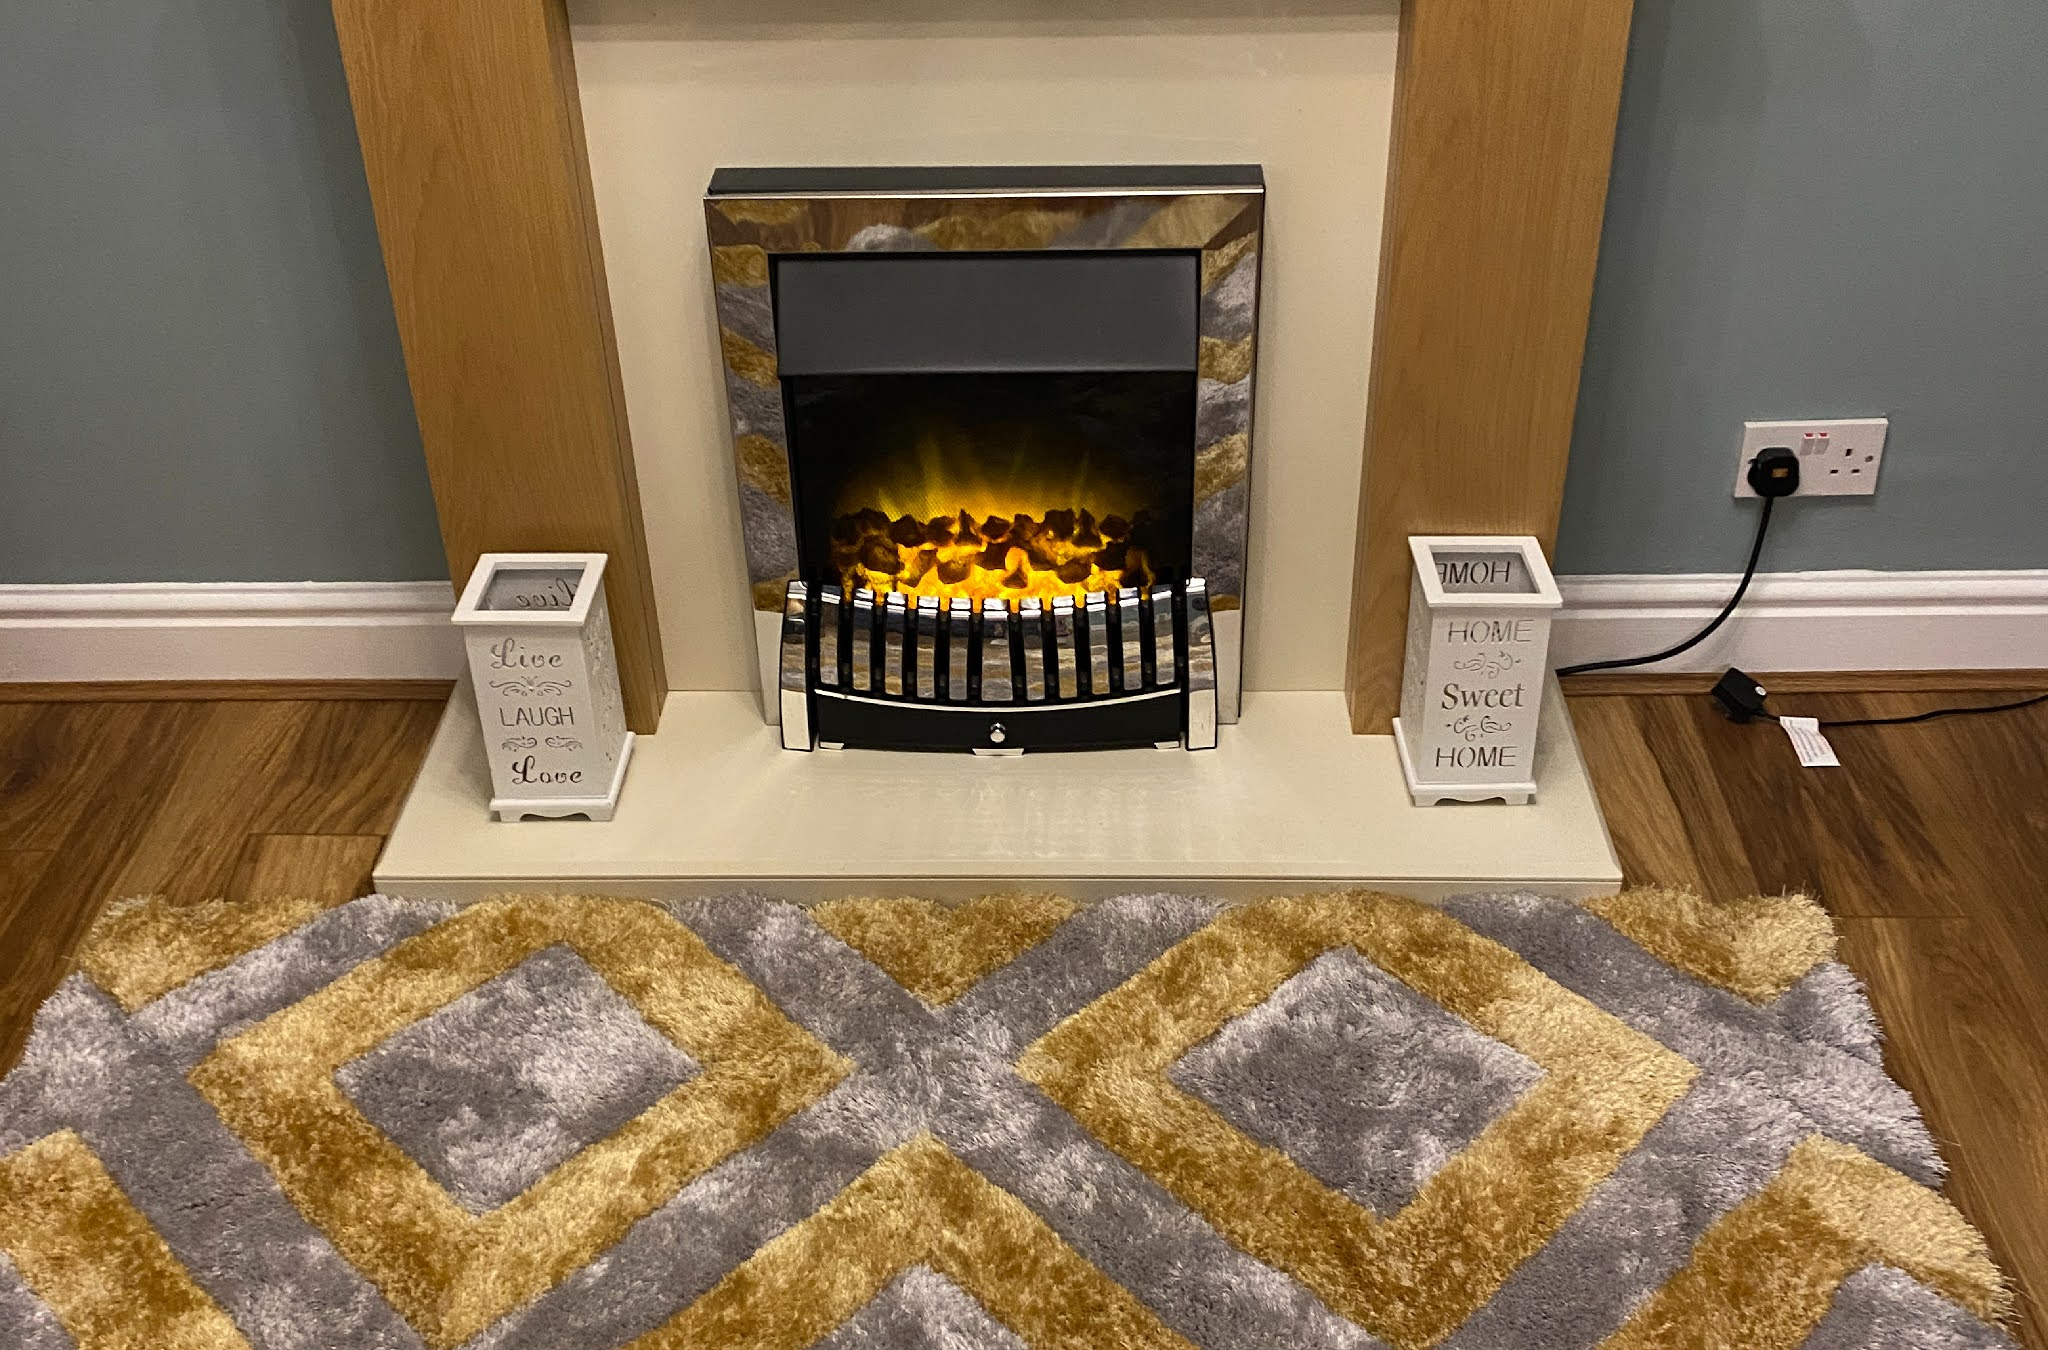 Fireplace with yellow and grey rug in front